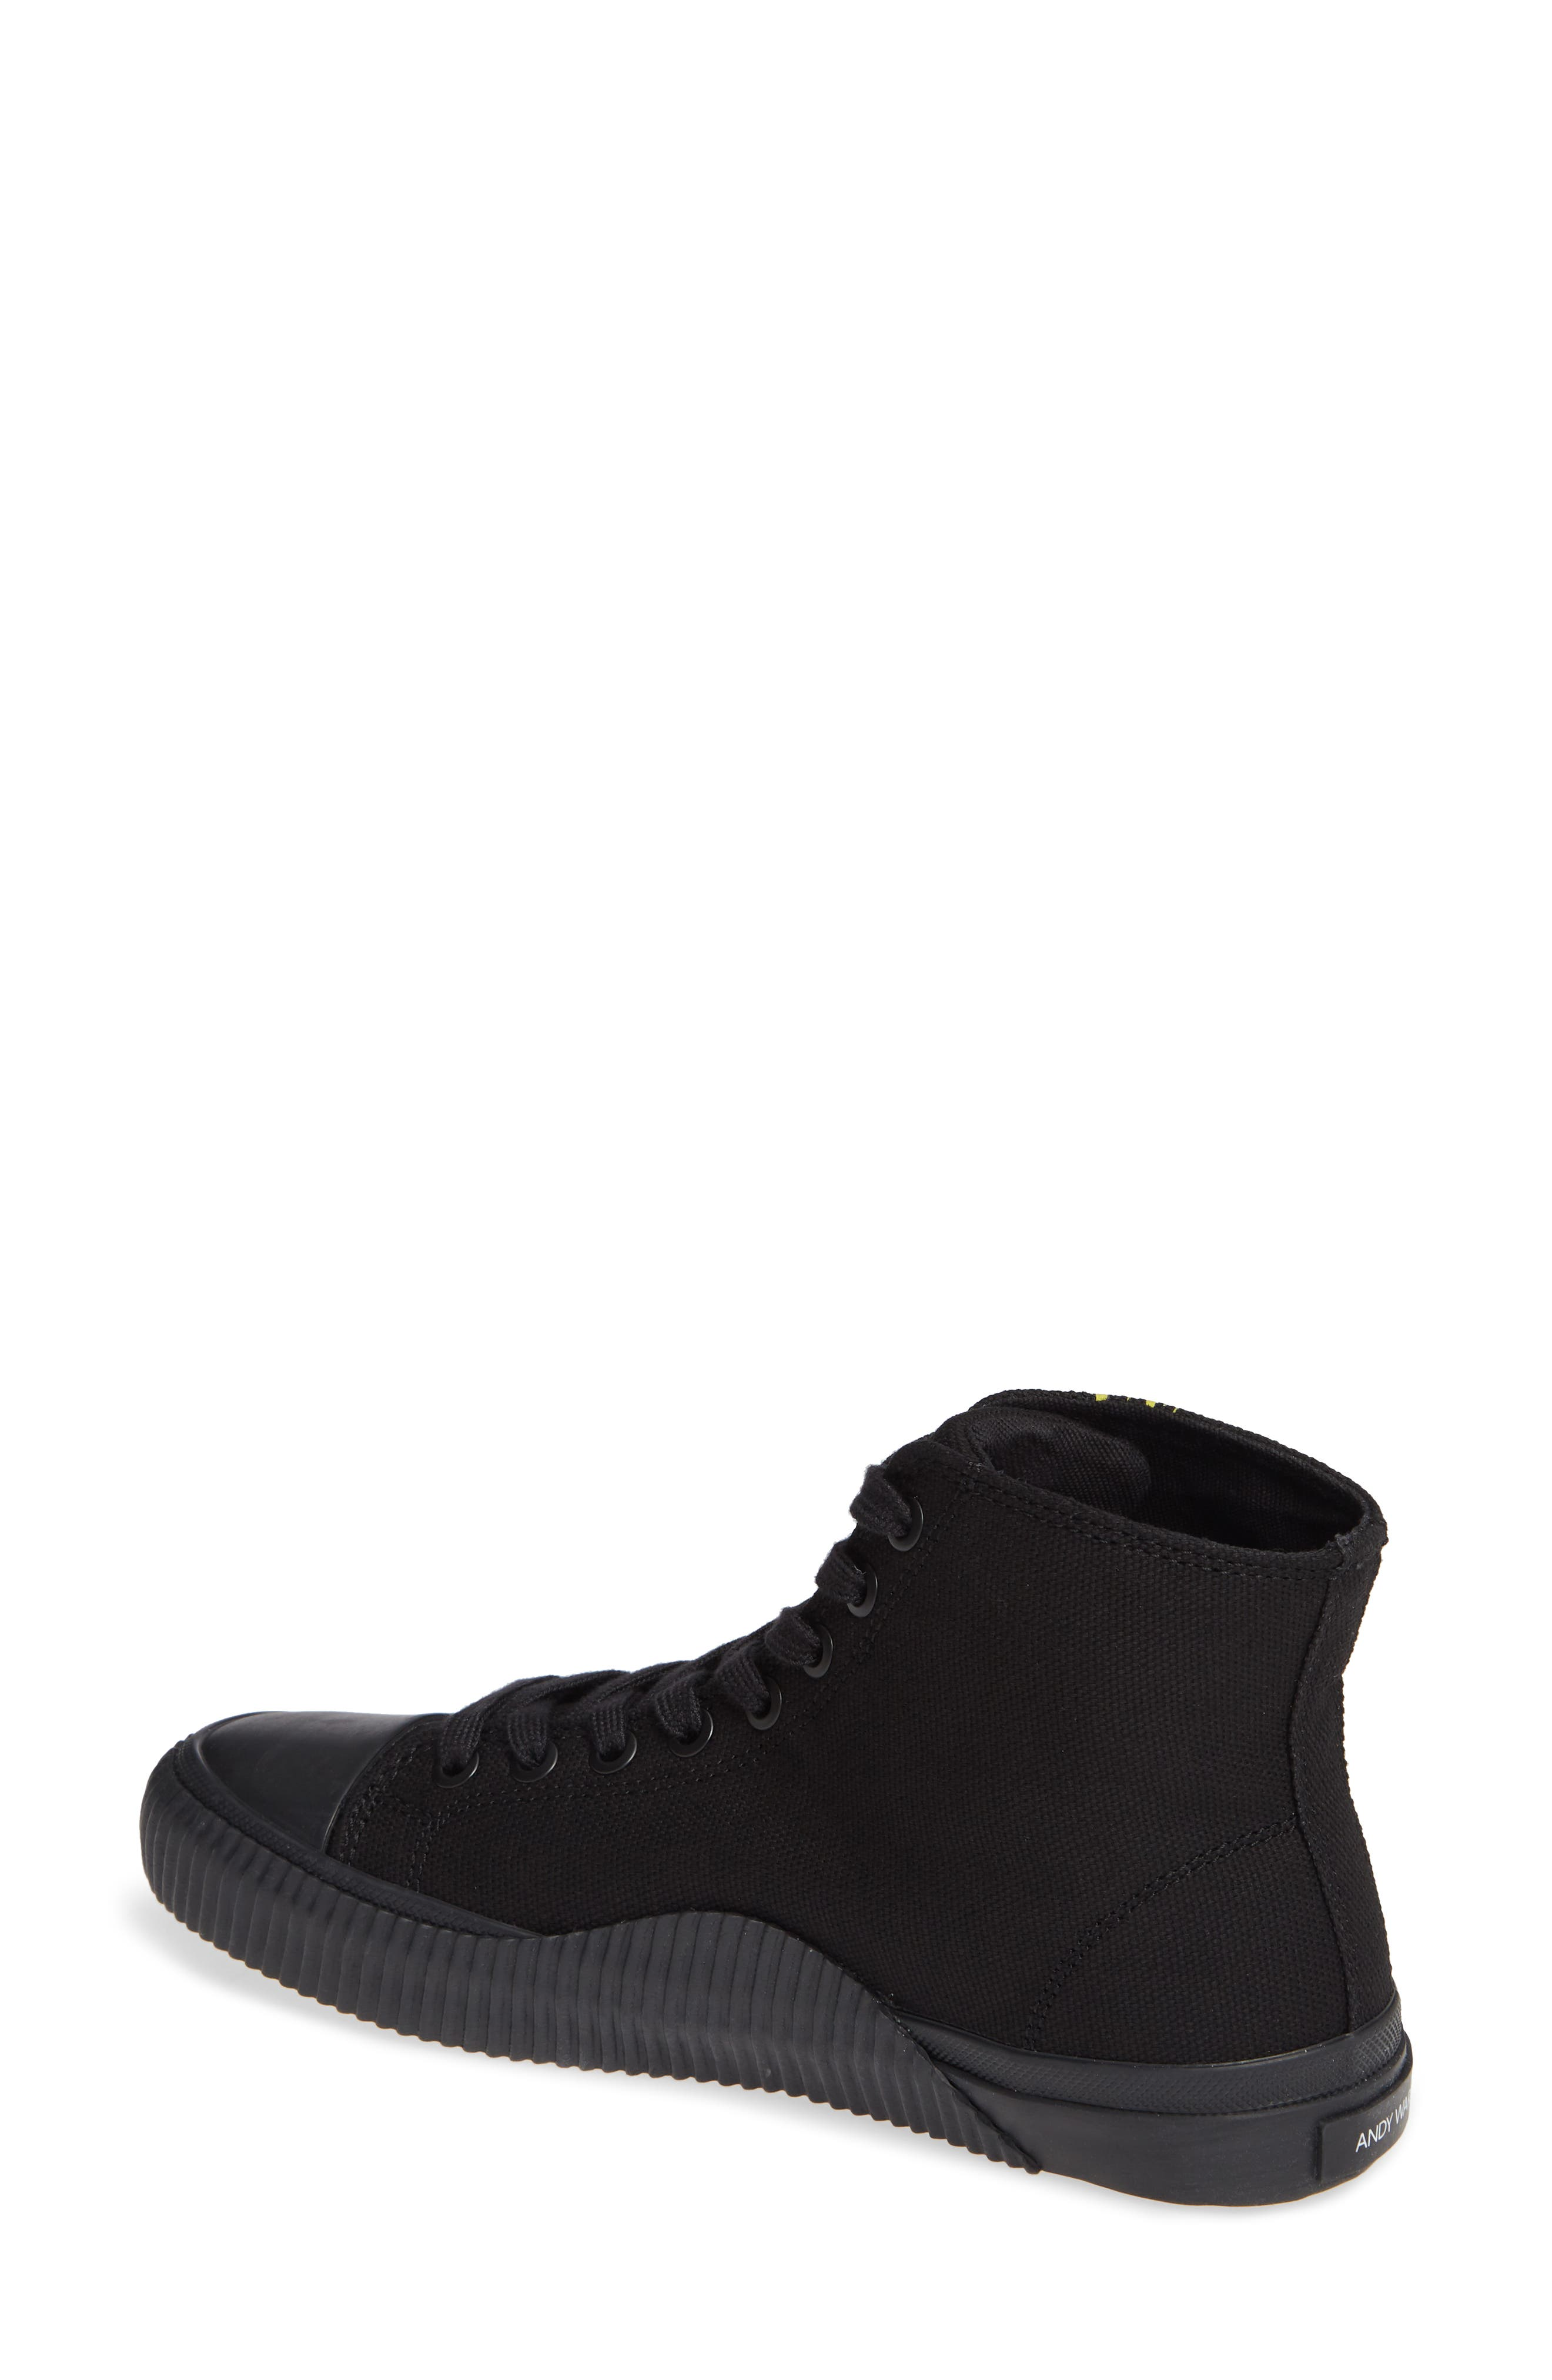 Iconica High Top Sneaker,                             Alternate thumbnail 2, color,                             001